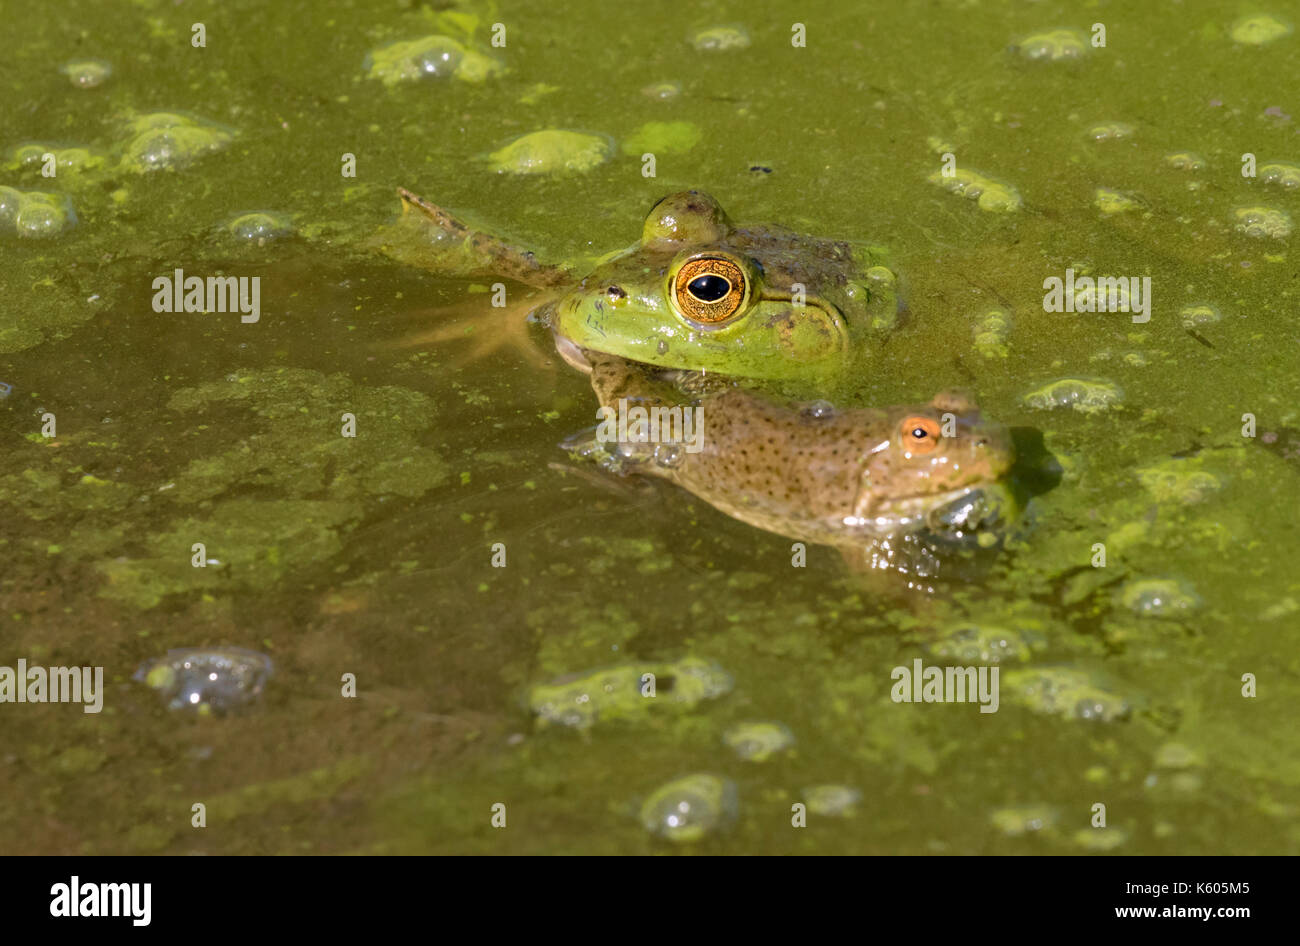 American bullfrog (Lithobates catesbeianus) attacking a young green frog (Rana clamitans) in a forest swamp, Ames, Iowa, USA - Stock Image